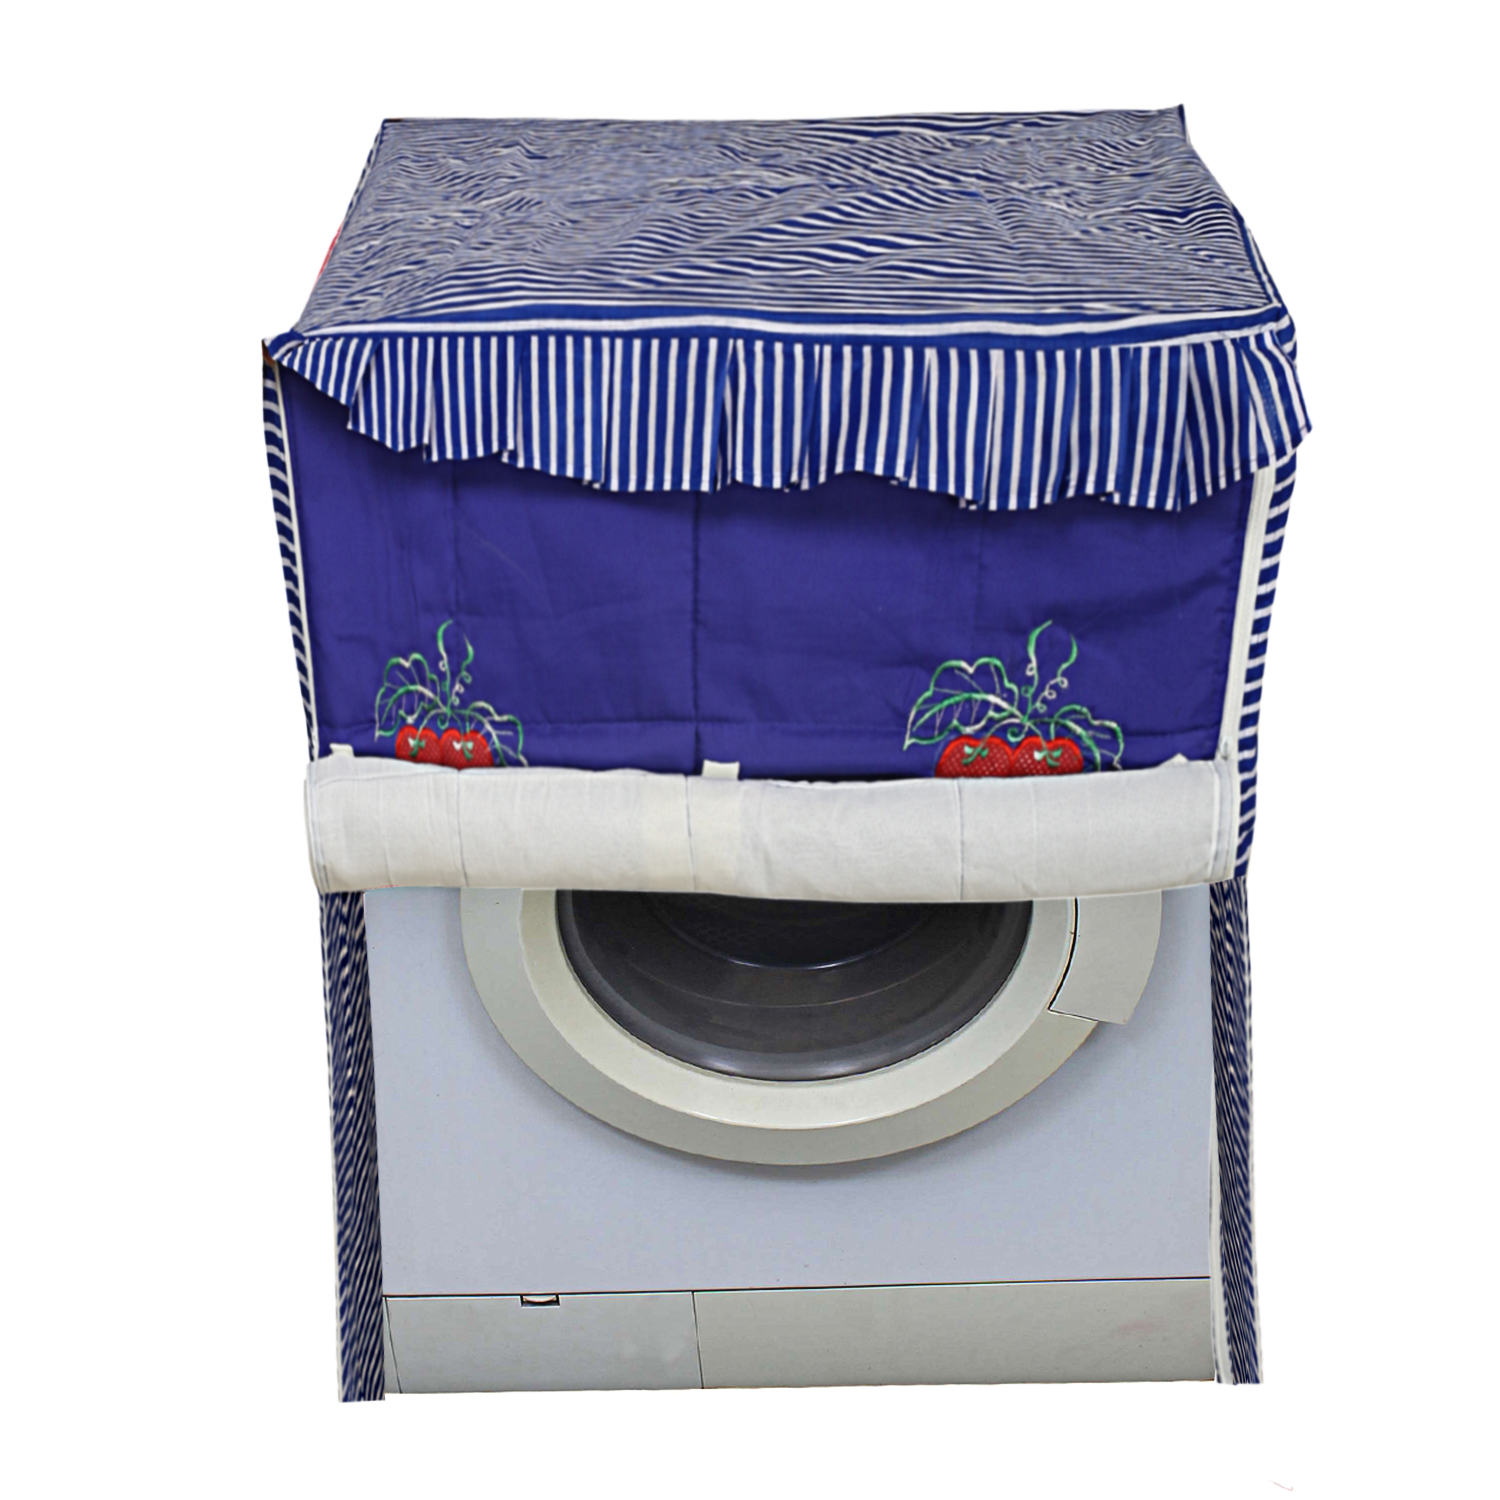 Kuber Industries Cotton Front Load Fully Automatic Washing Machine Cover (Blue)